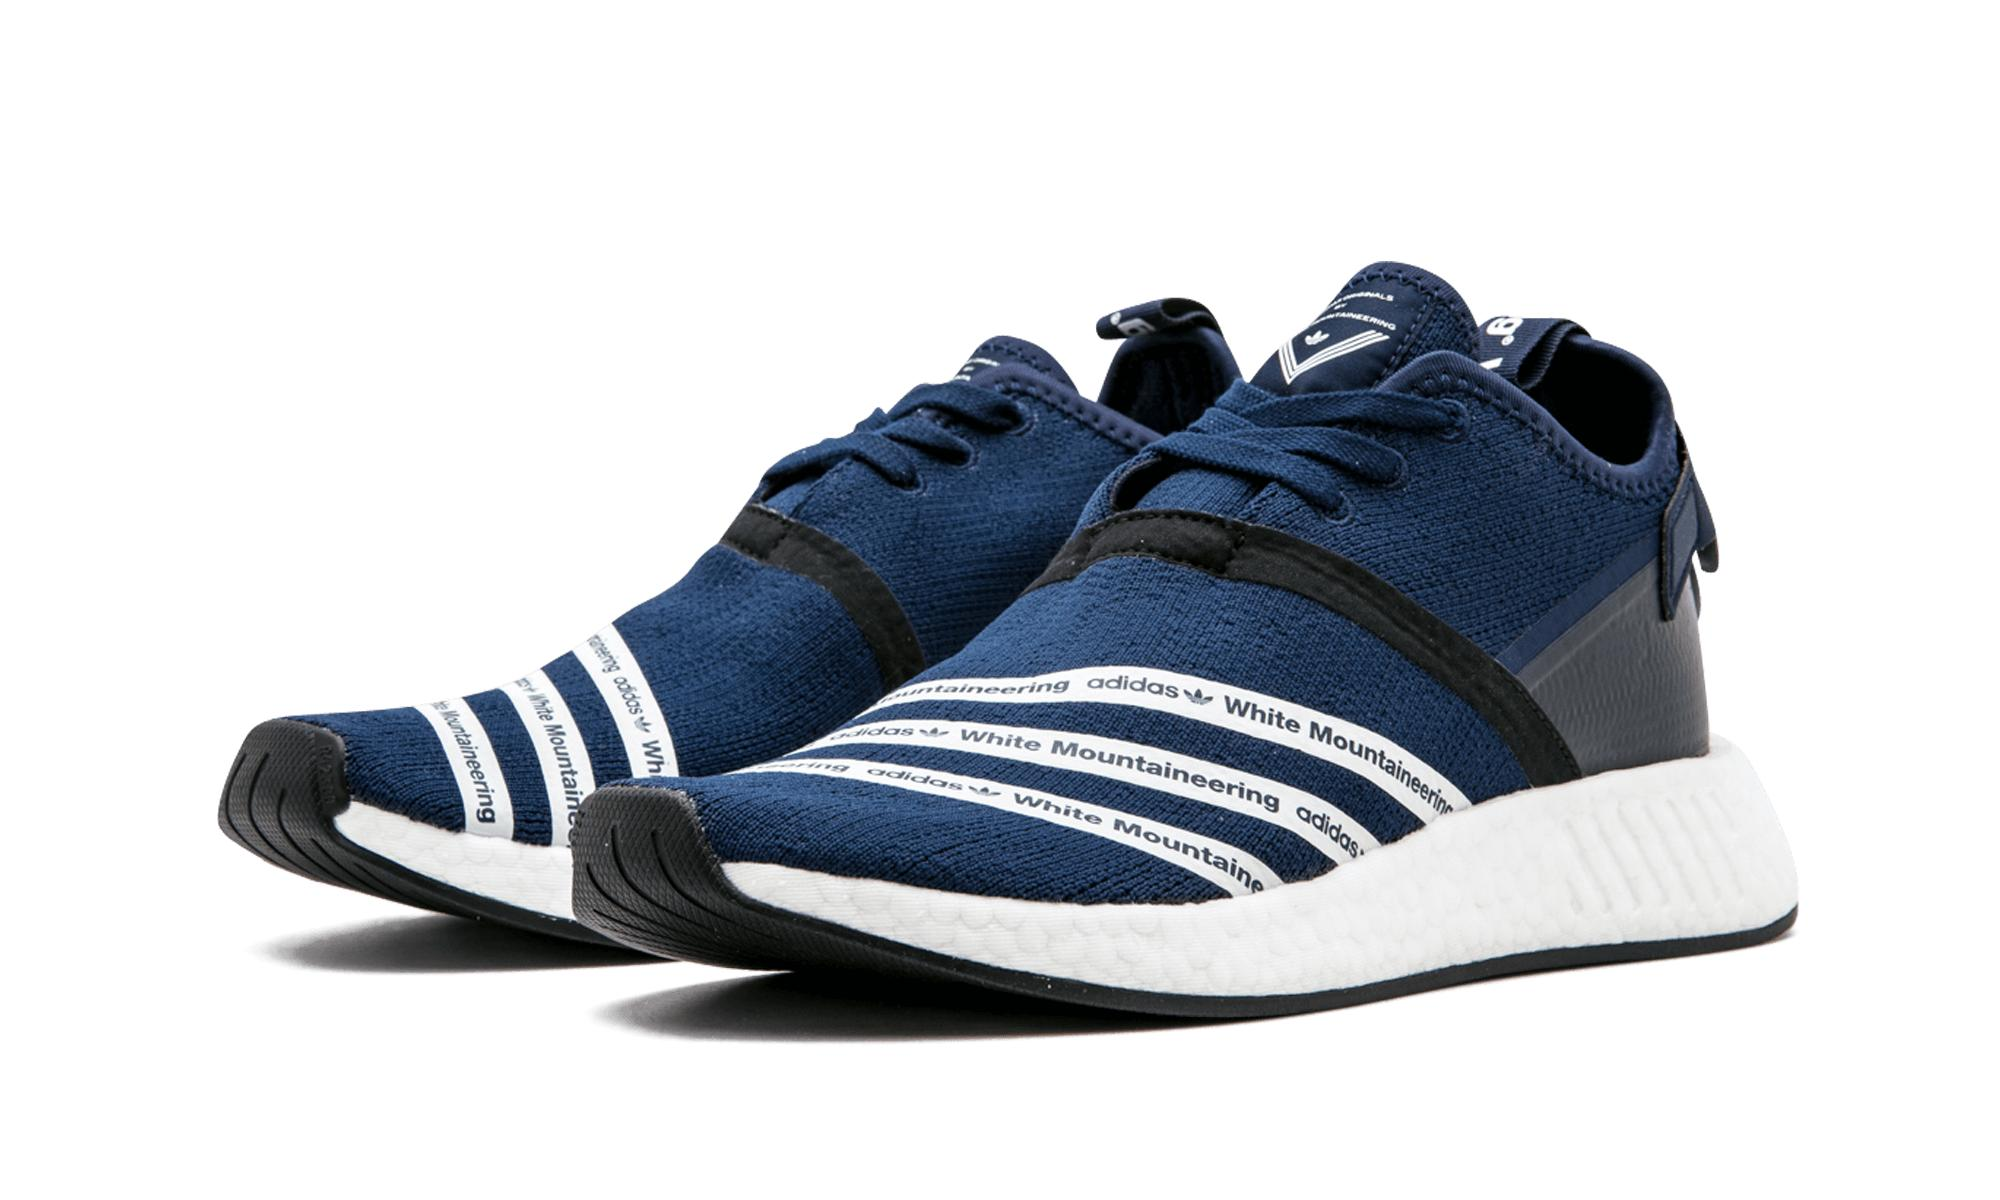 e320e5110 Adidas - Blue Wm Nmd R2 Pk for Men - Lyst. View fullscreen